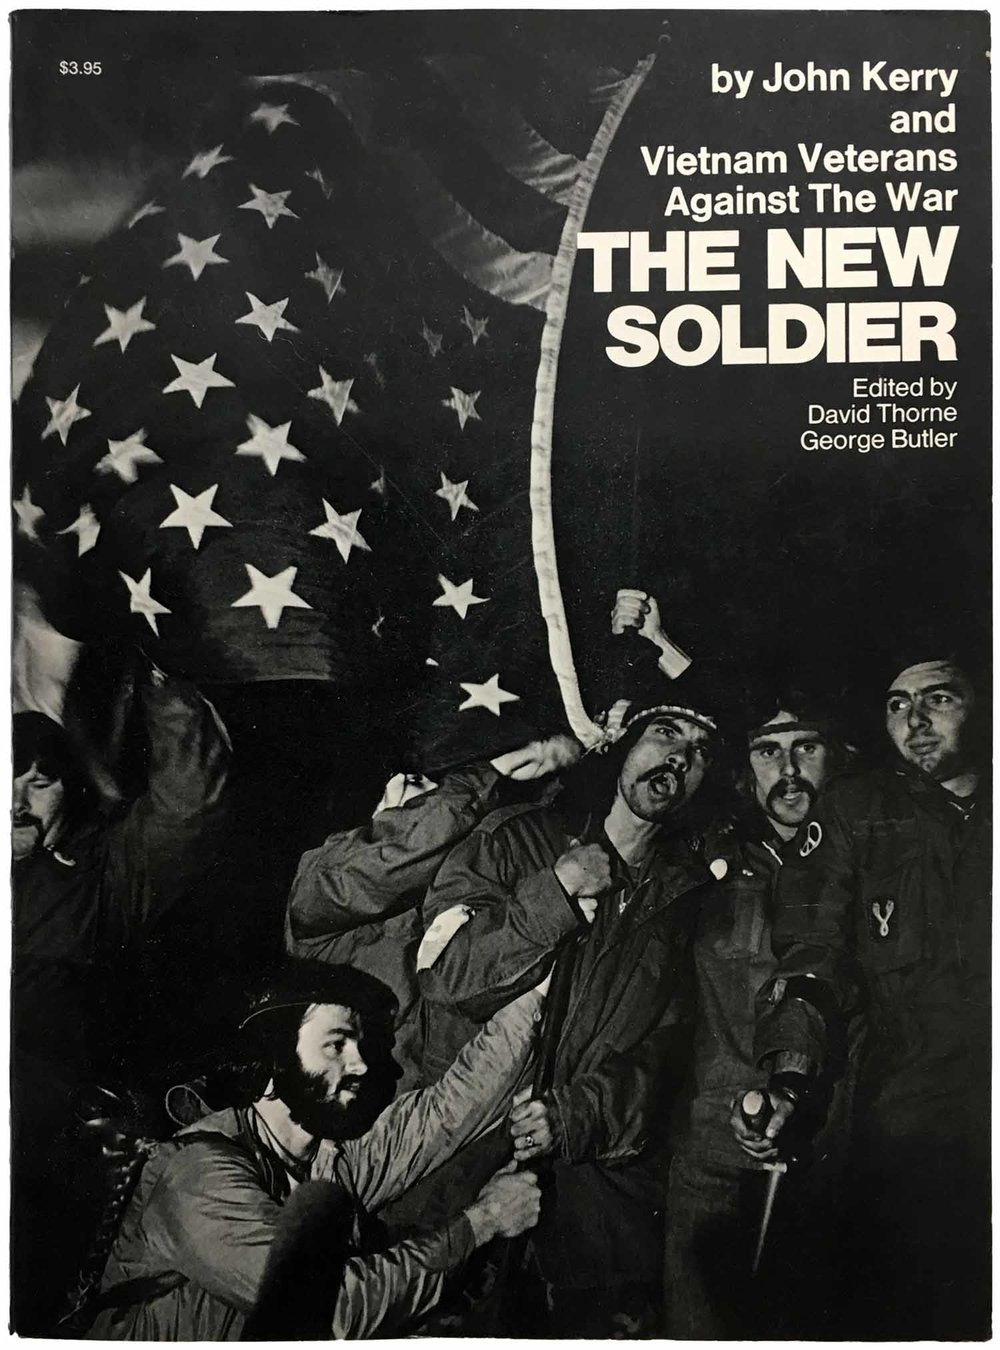 The New Soldier by John Kerry and Vietnam Veterans Against the War cover